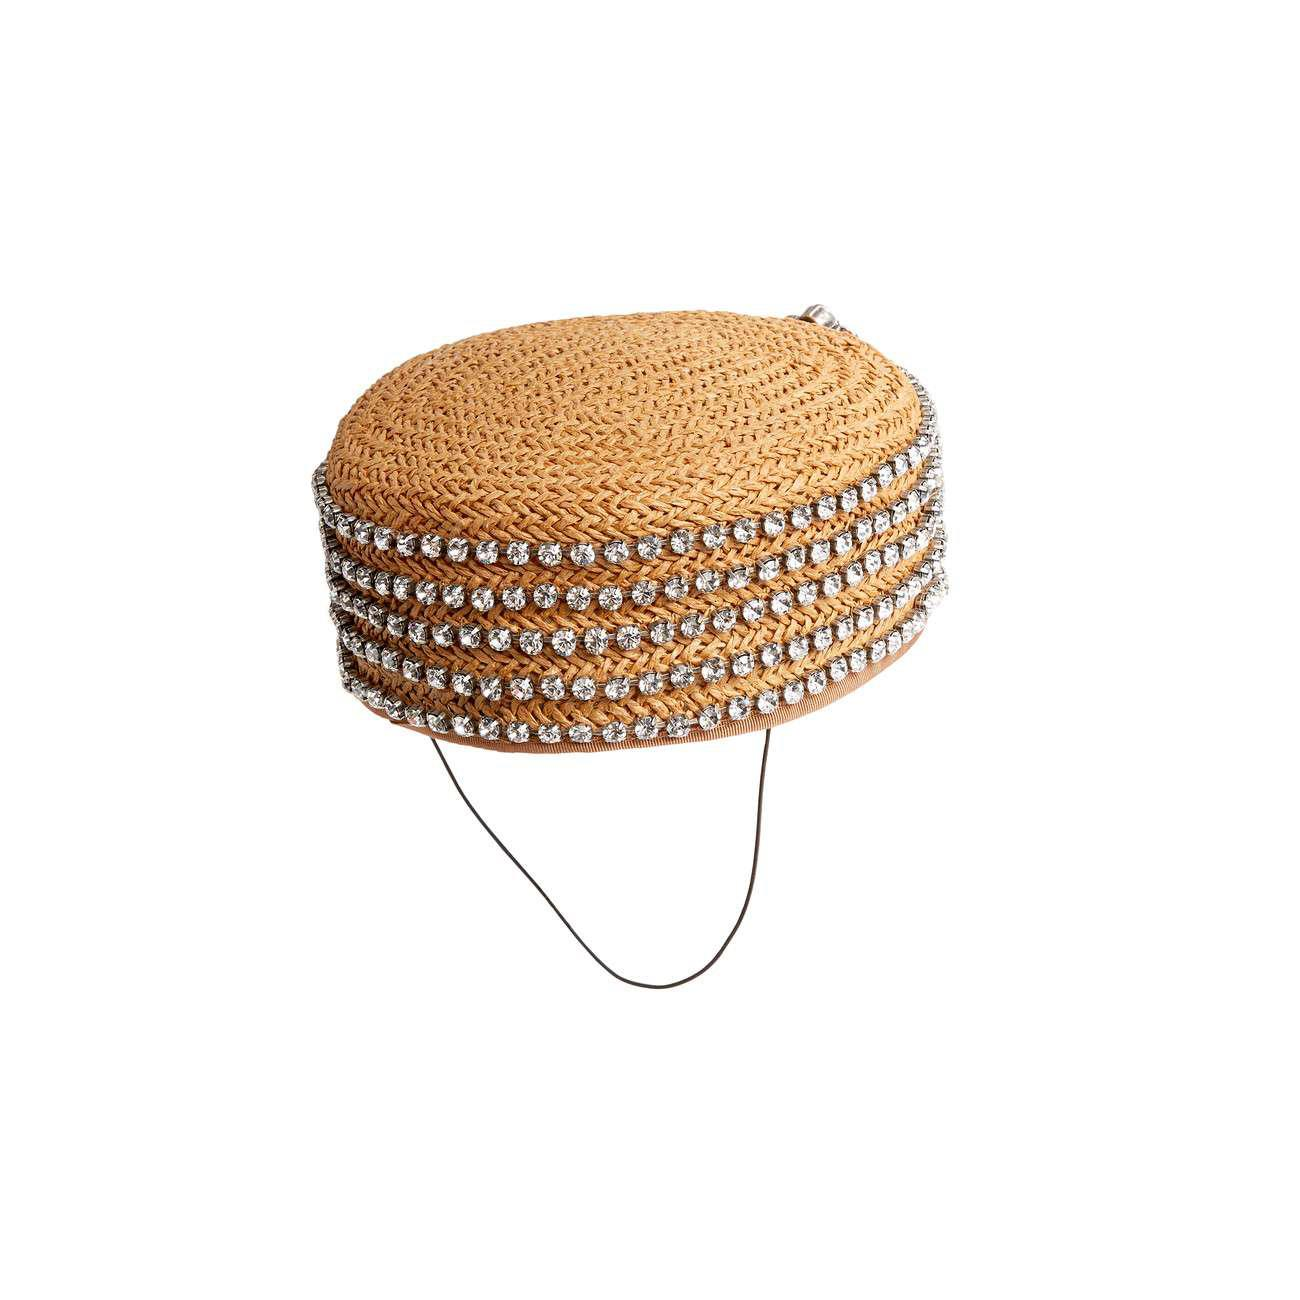 Lyst - Gucci Papier Hat With Crystals in White b0e58d1e45a